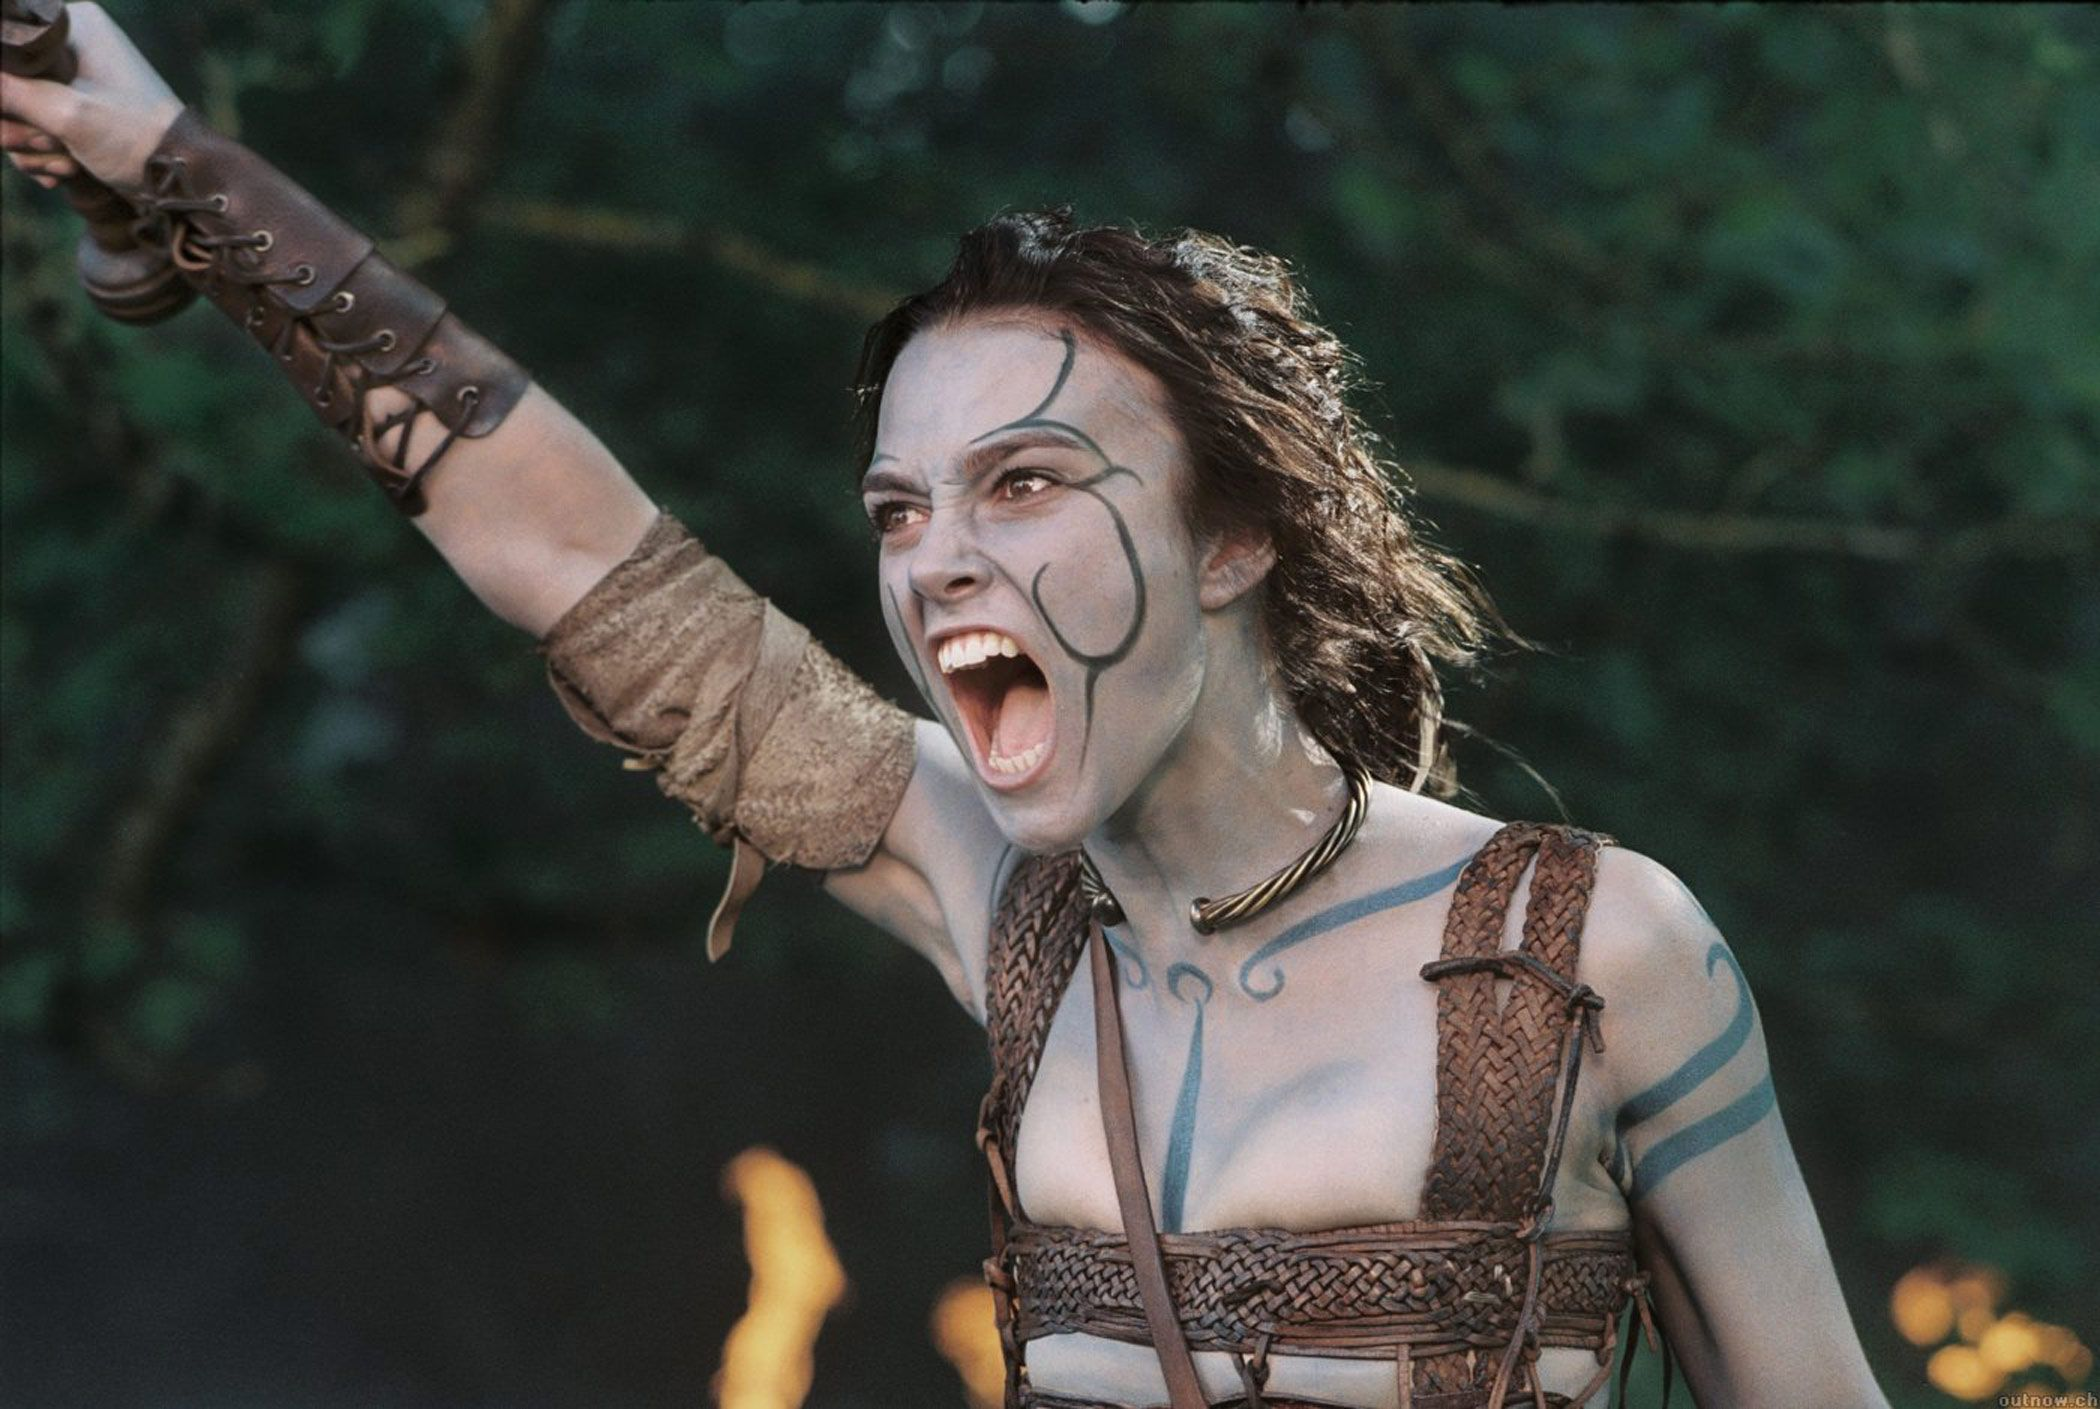 Badsss Warrior Women in Movies - Top Female Fighters in Movies